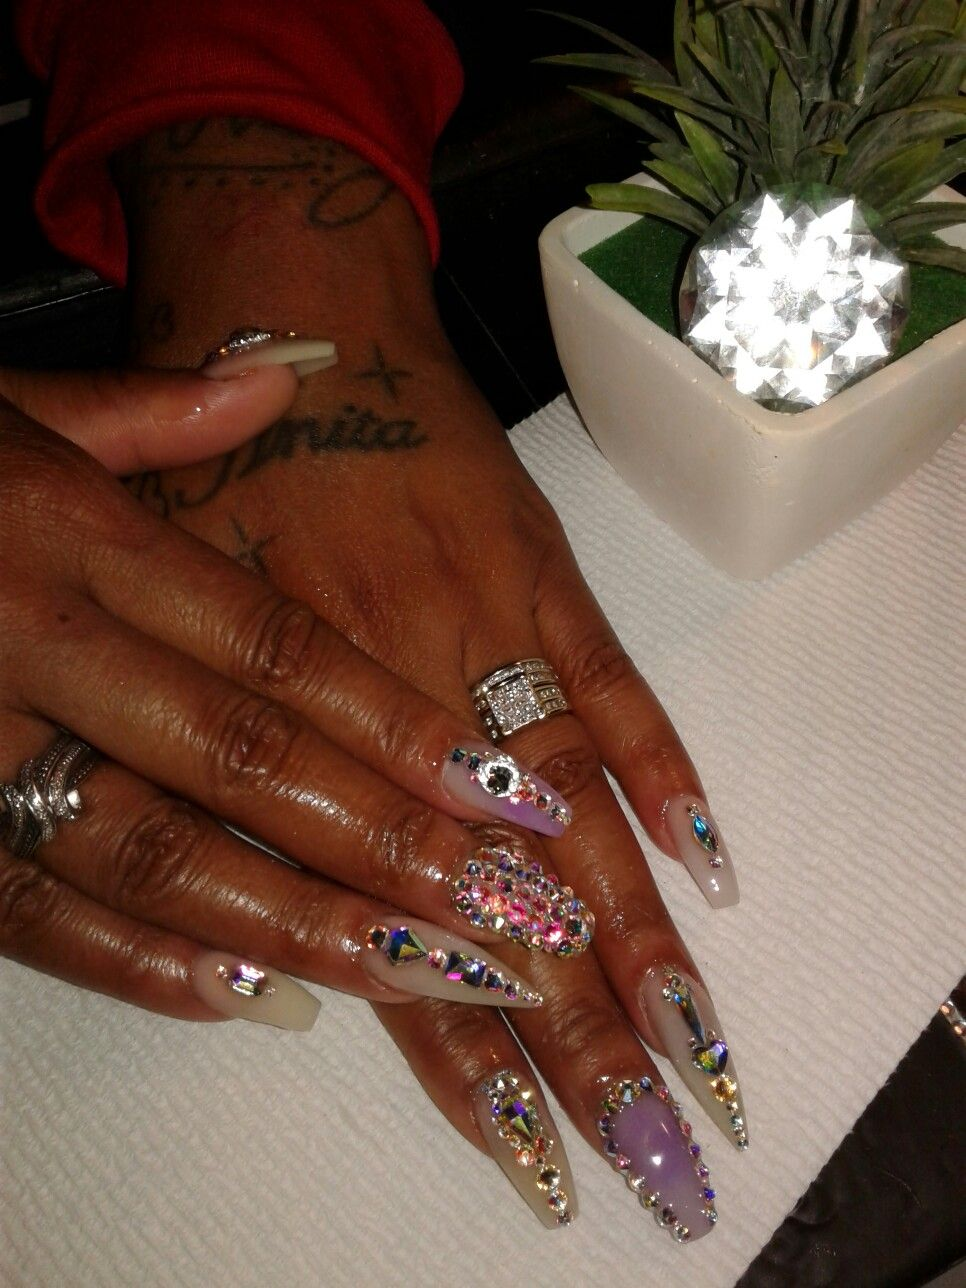 This Is A Mixed Set Of Coffin An Stiletto Nail Ice Out In Flat Backcrystal In Different Sizes Stiletto Nails Nails You Nailed It